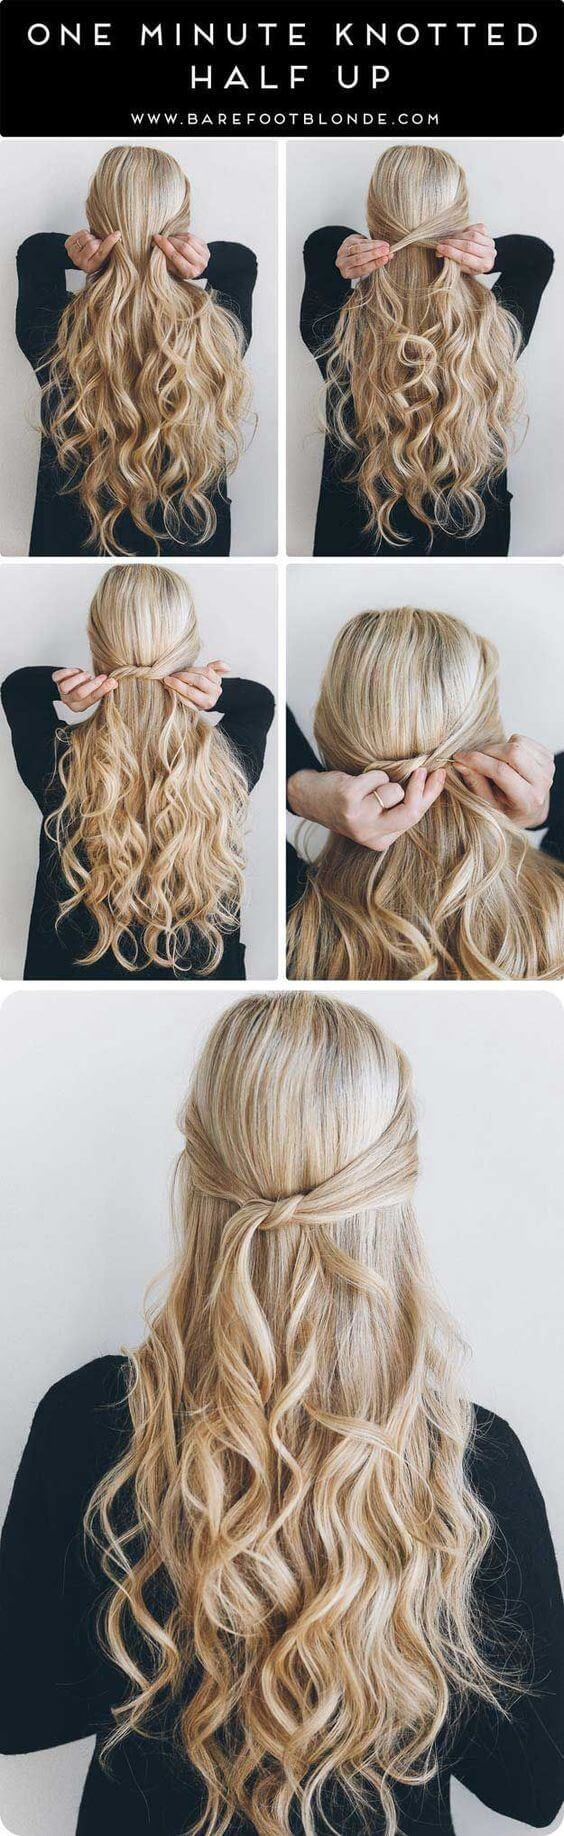 24+ Updos How To DO Homecoming Hairstyles